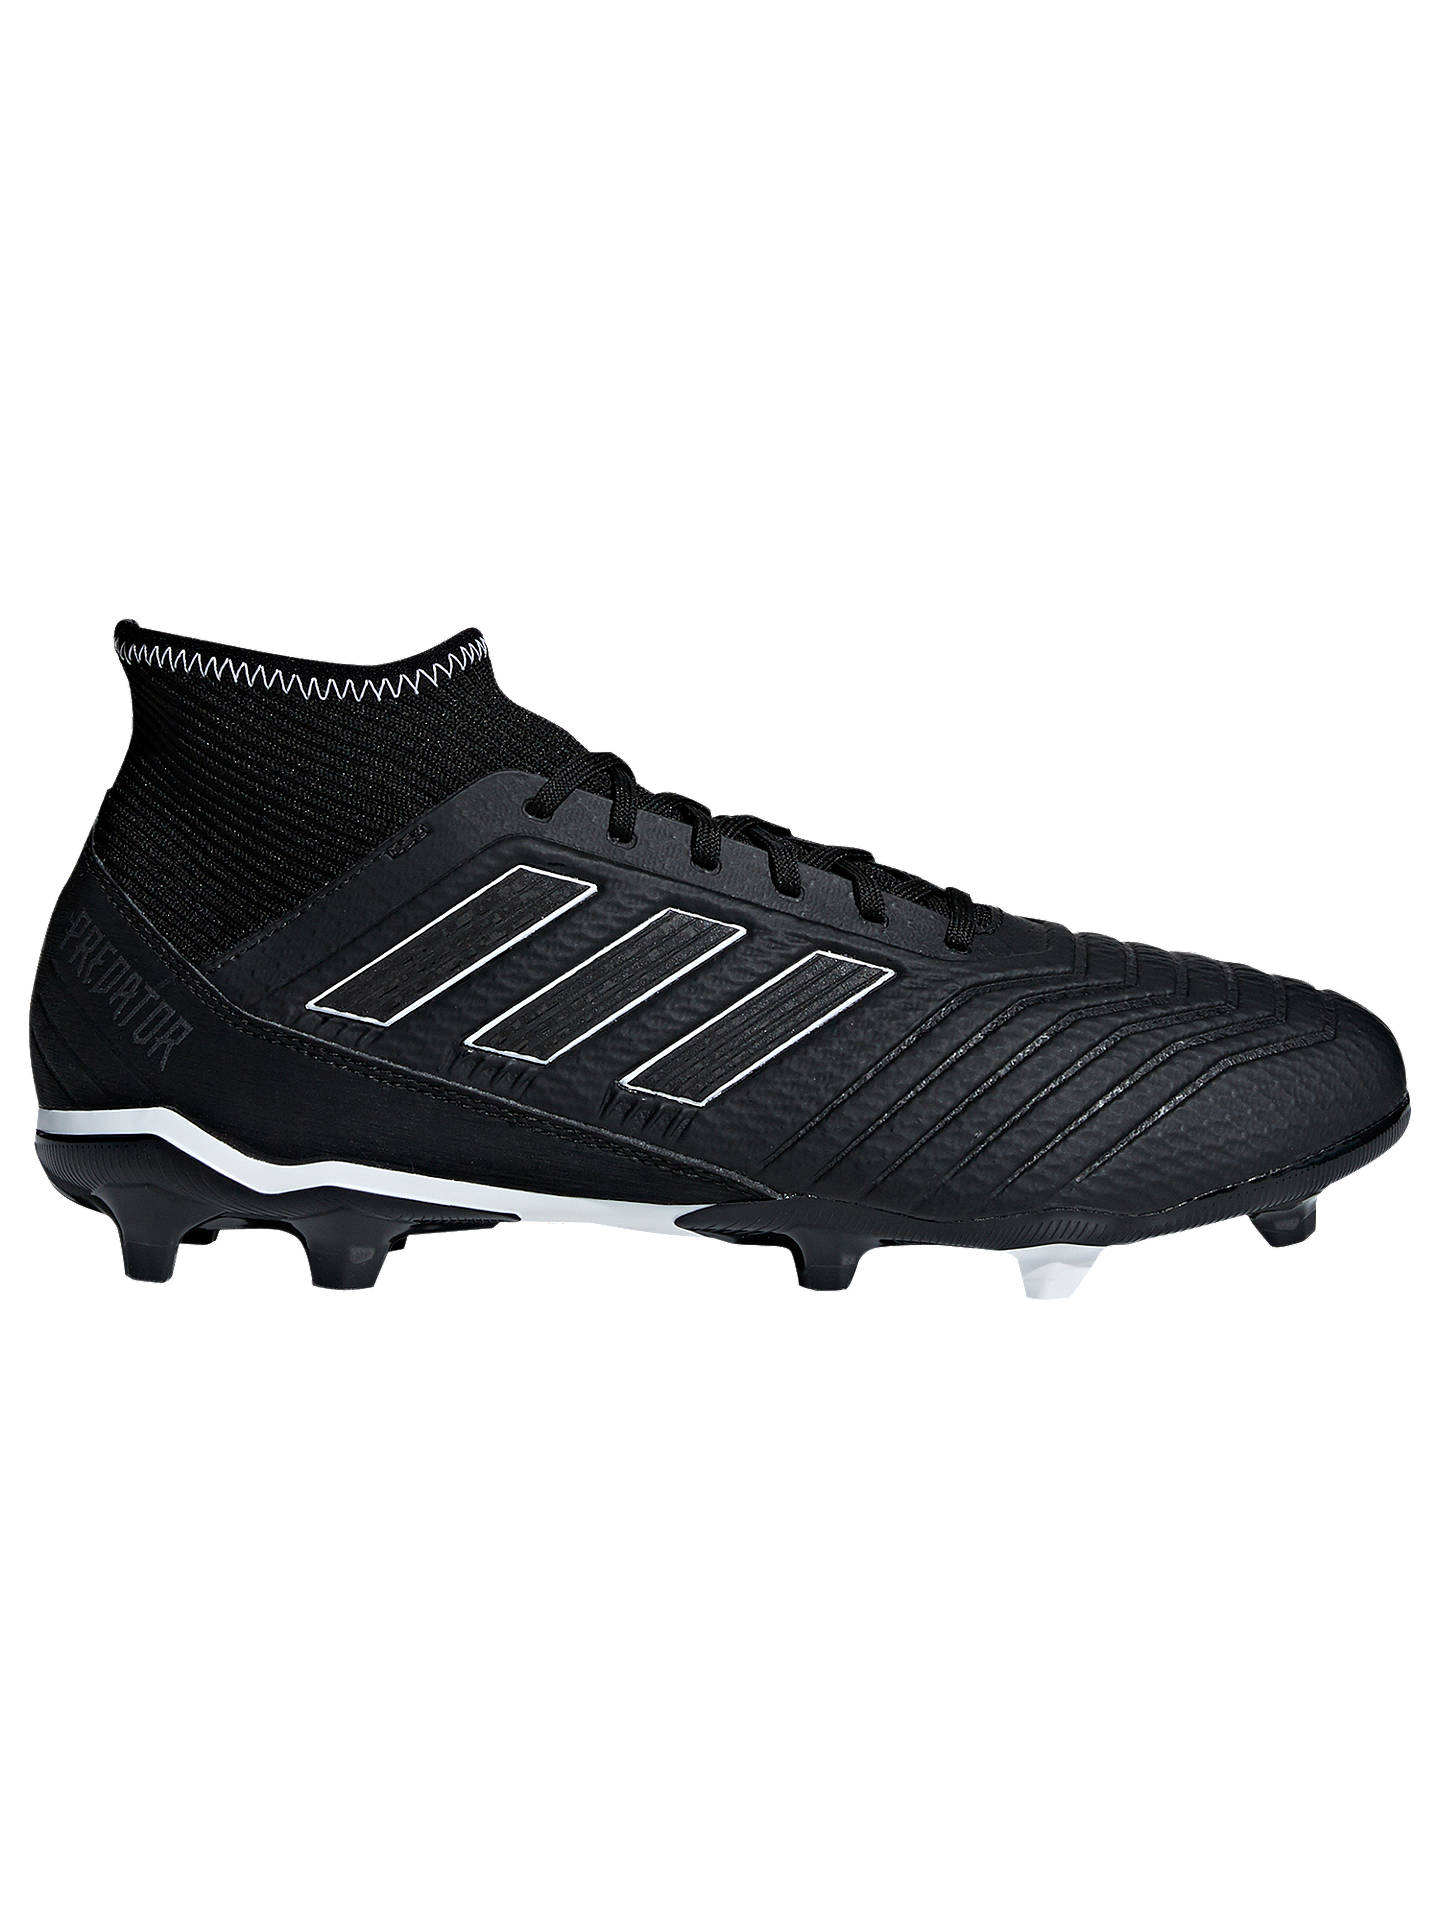 huge discount f26eb 3e3c4 Buyadidas Predator 18.3 Mens Firm Ground Football Boots, Core Black, 7  Online at johnlewis ...